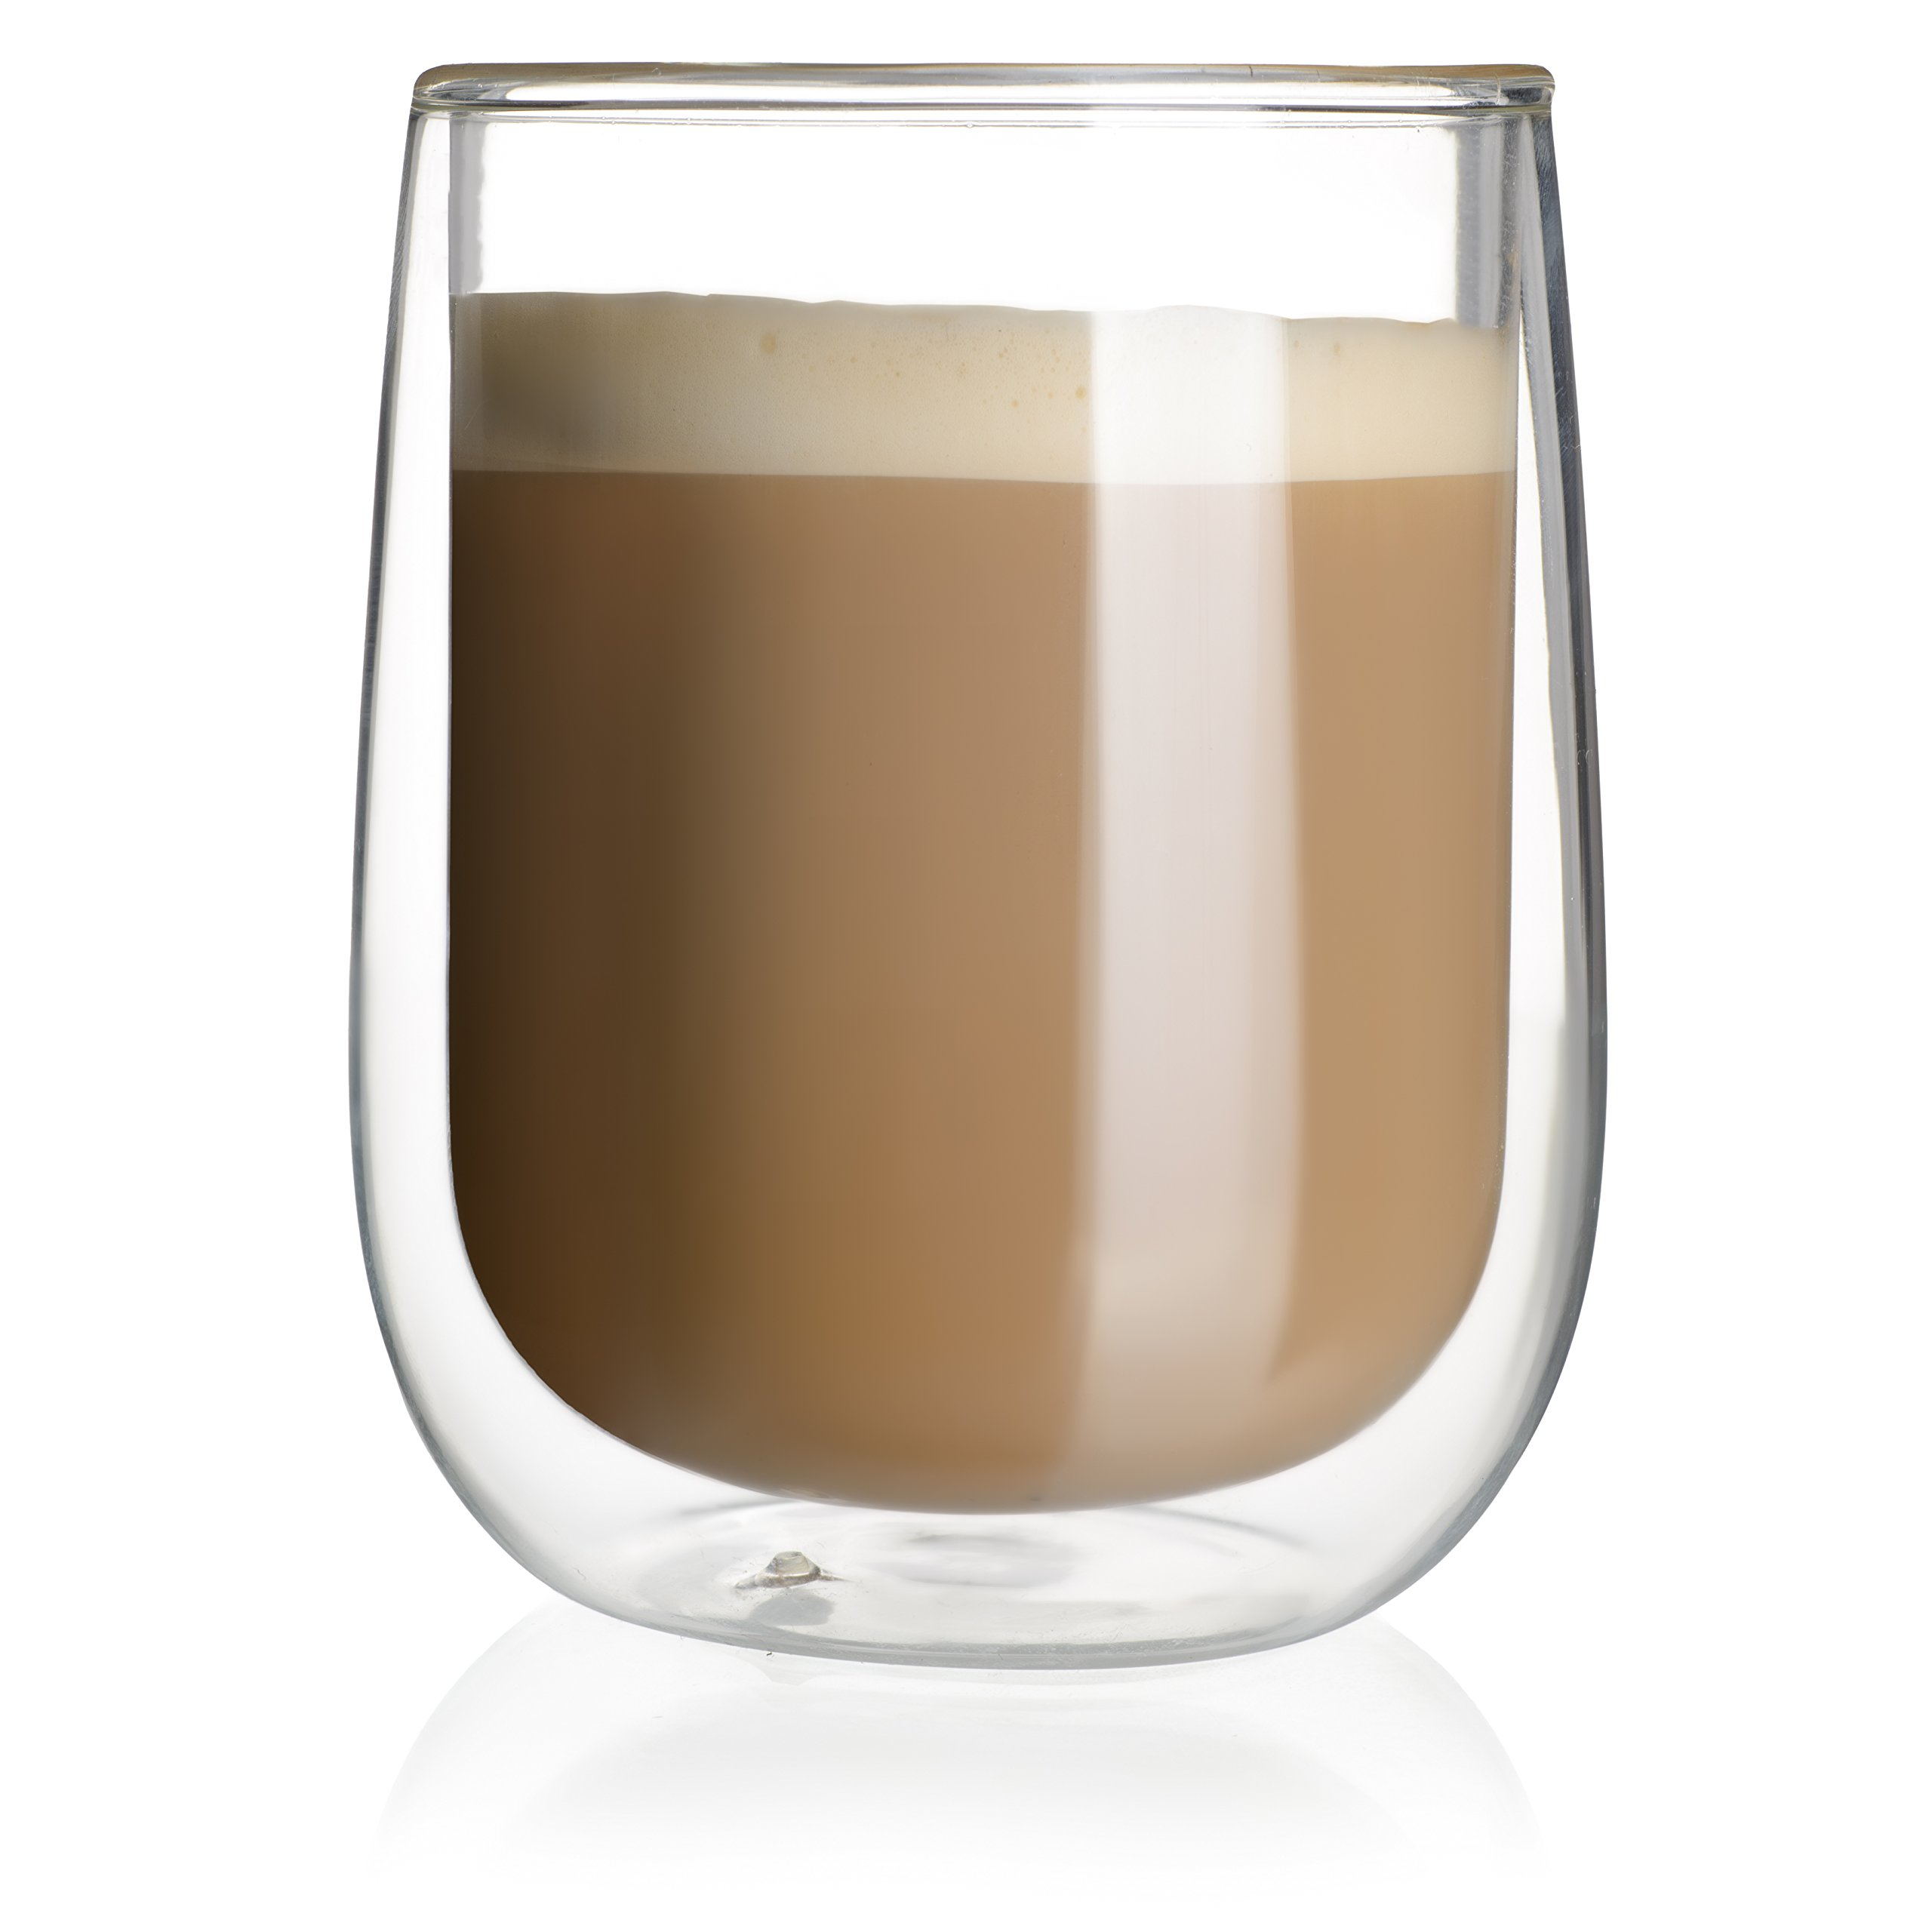 Double Walled Coffee or Tea Glasses, Perfect Espresso Cappuccino Cups or Latte Mugs, Thermo Insulated Premium Quality Borosilicate Glass, Set of 2 (12.1 oz, 360 ml), by HomeKitchenStar by HomeKitchenStar (Image #8)